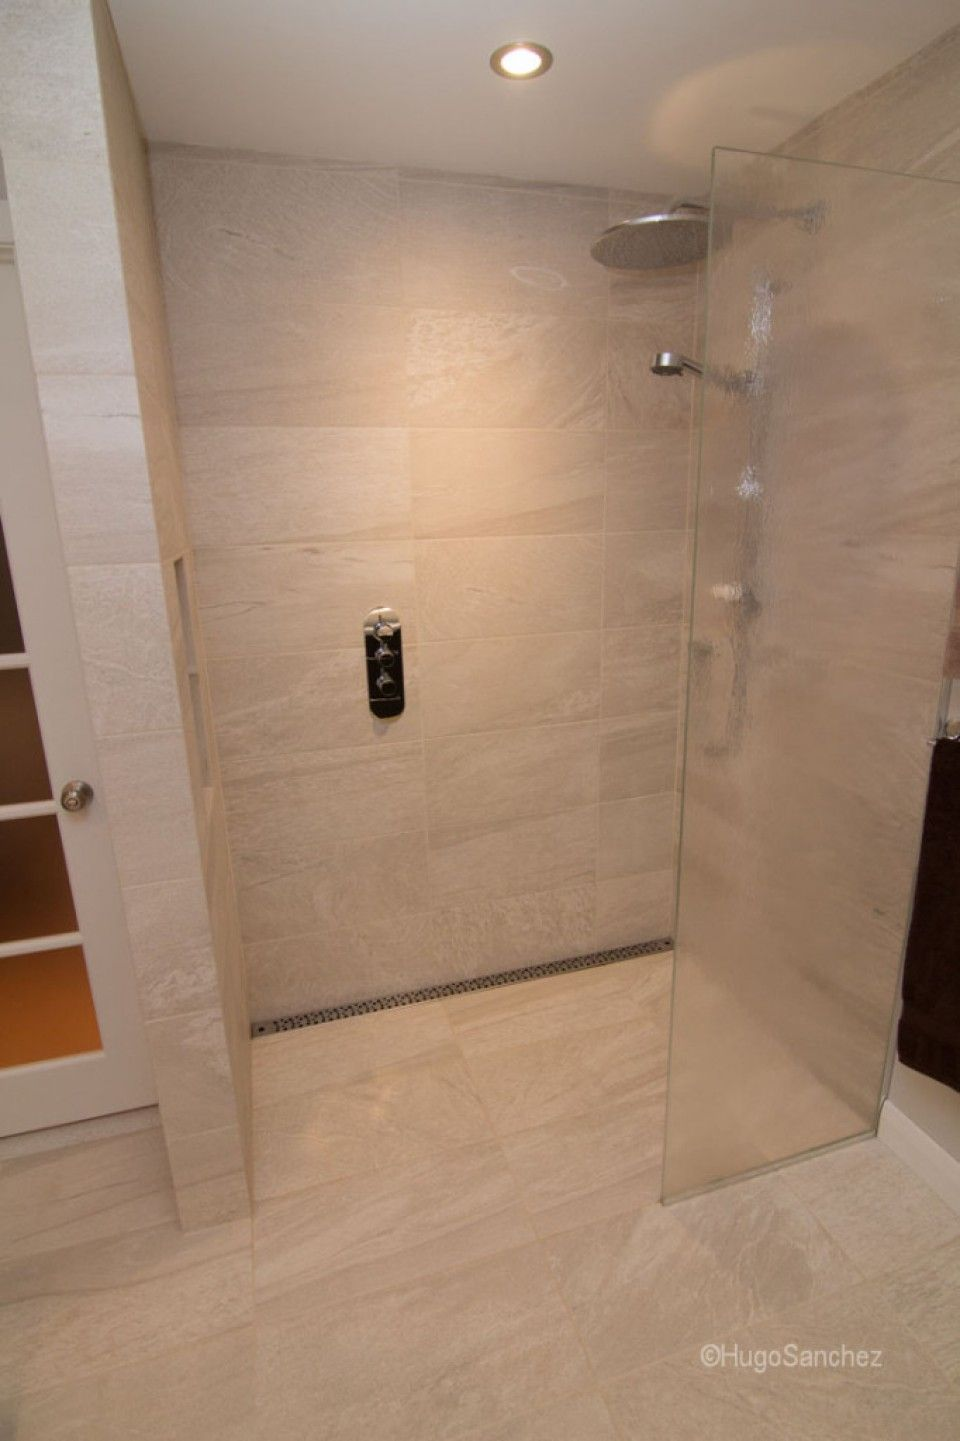 Curbless shower designs - Cramiques Hugo Sanchez